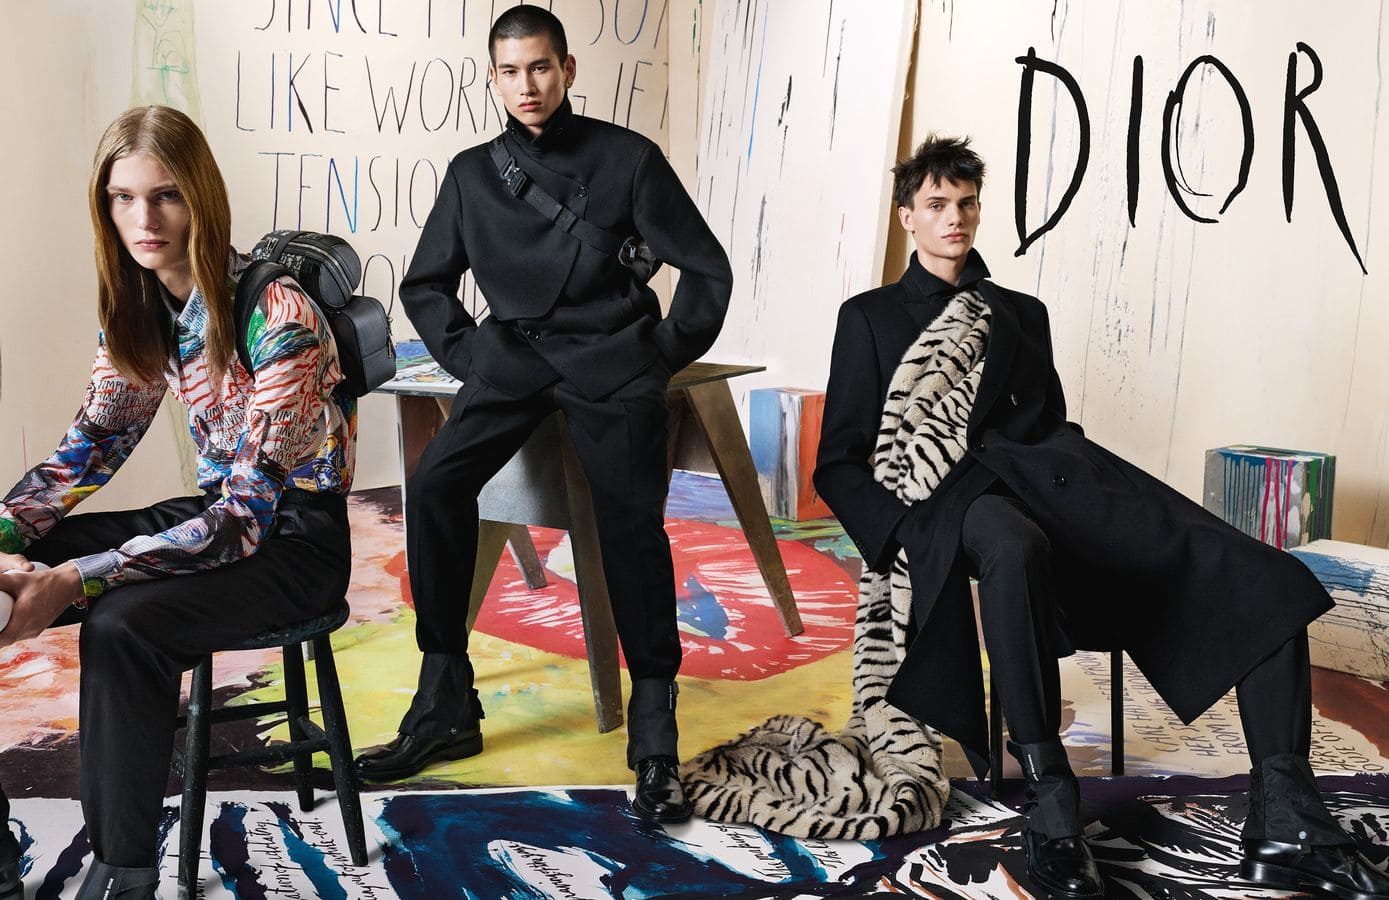 Dior Homme's latest campaign pays homage to Raymond Pettibon's oeuvre